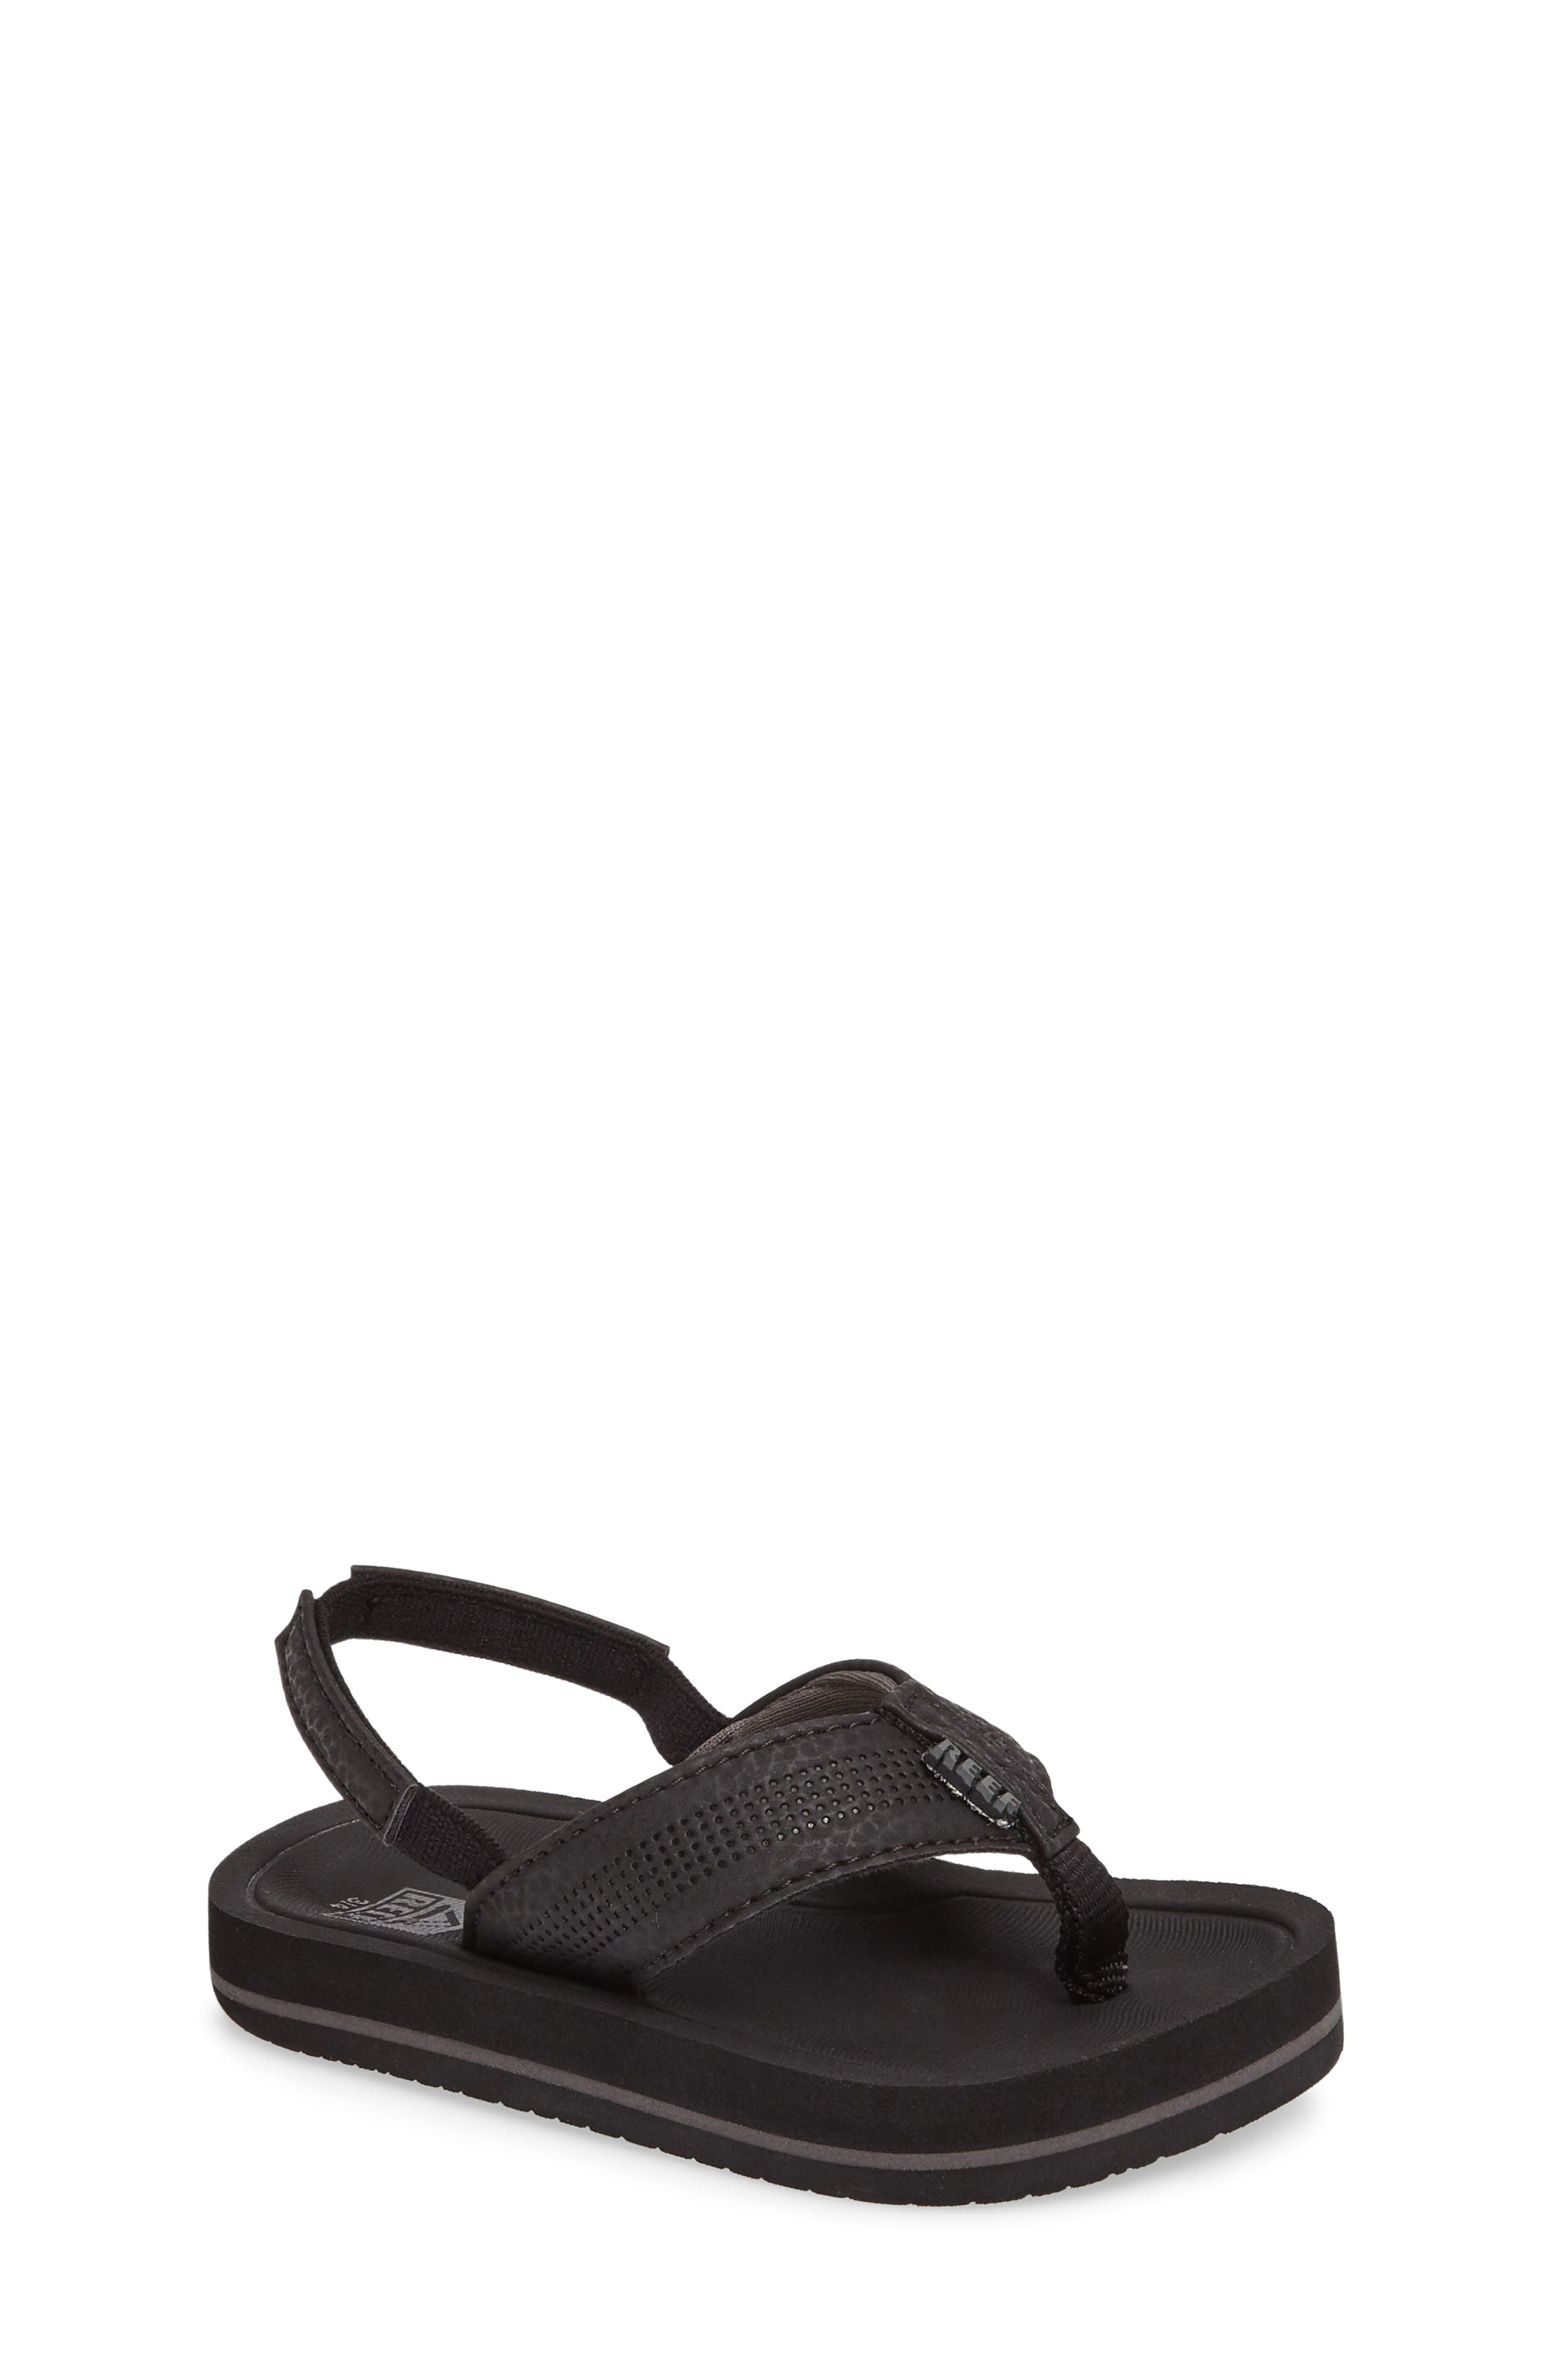 Grom Splash Sandal,                         Main,                         color, 001